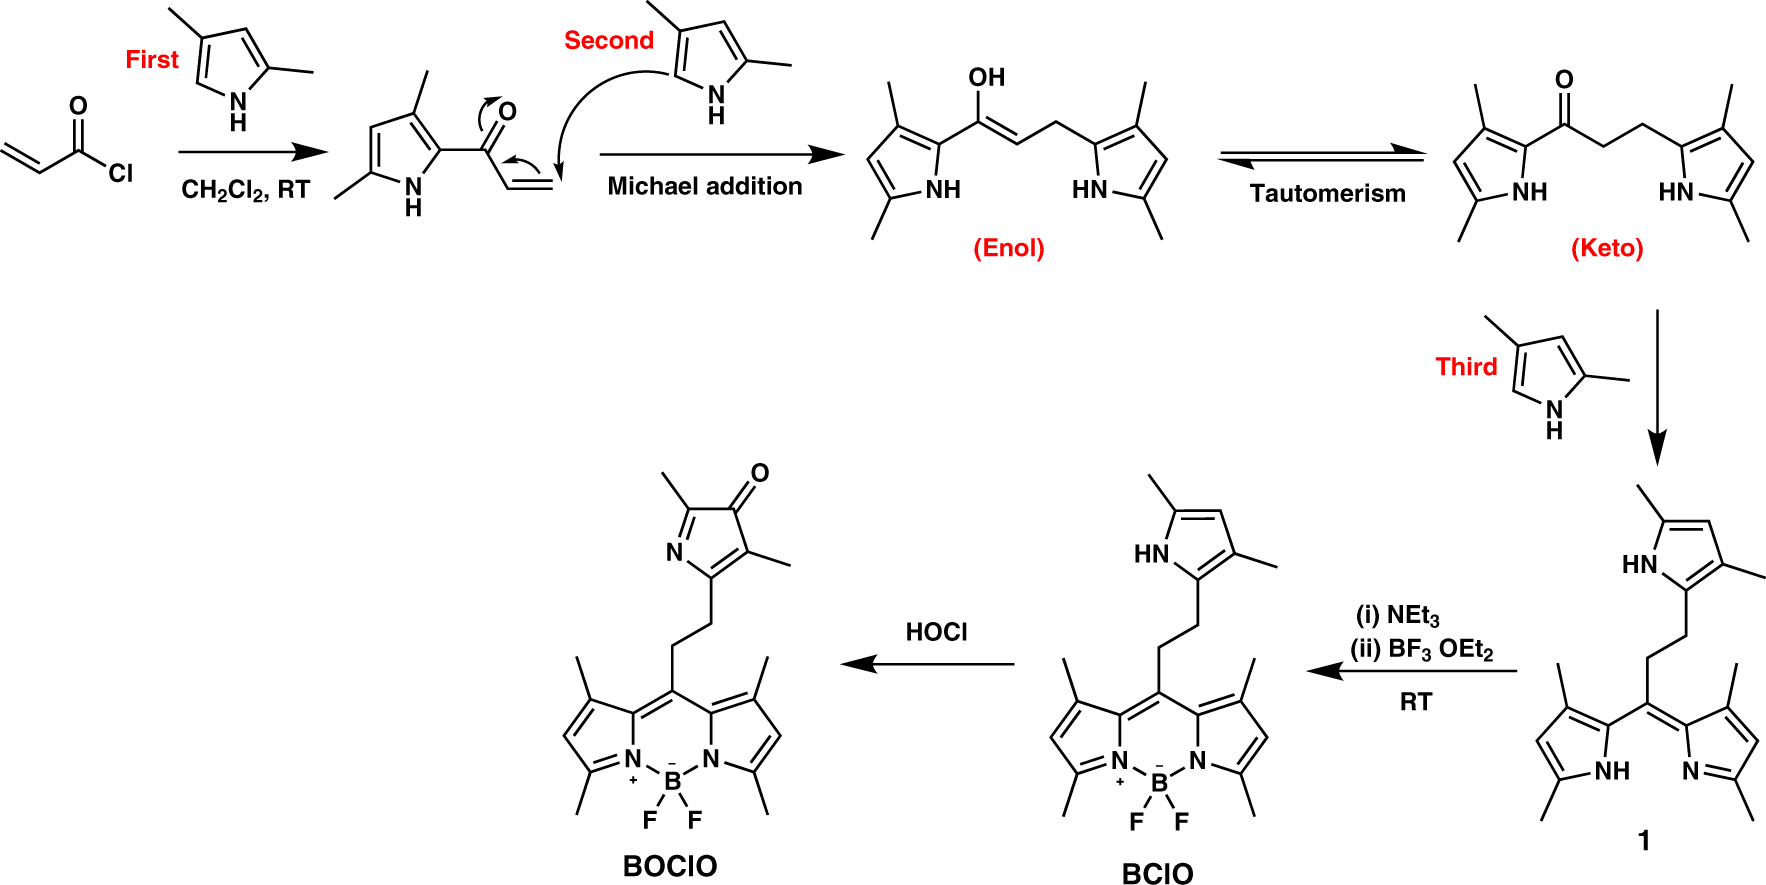 One-pot synthesis of BClO and its reaction with HOCl to generate highly fluorescent BOClO.